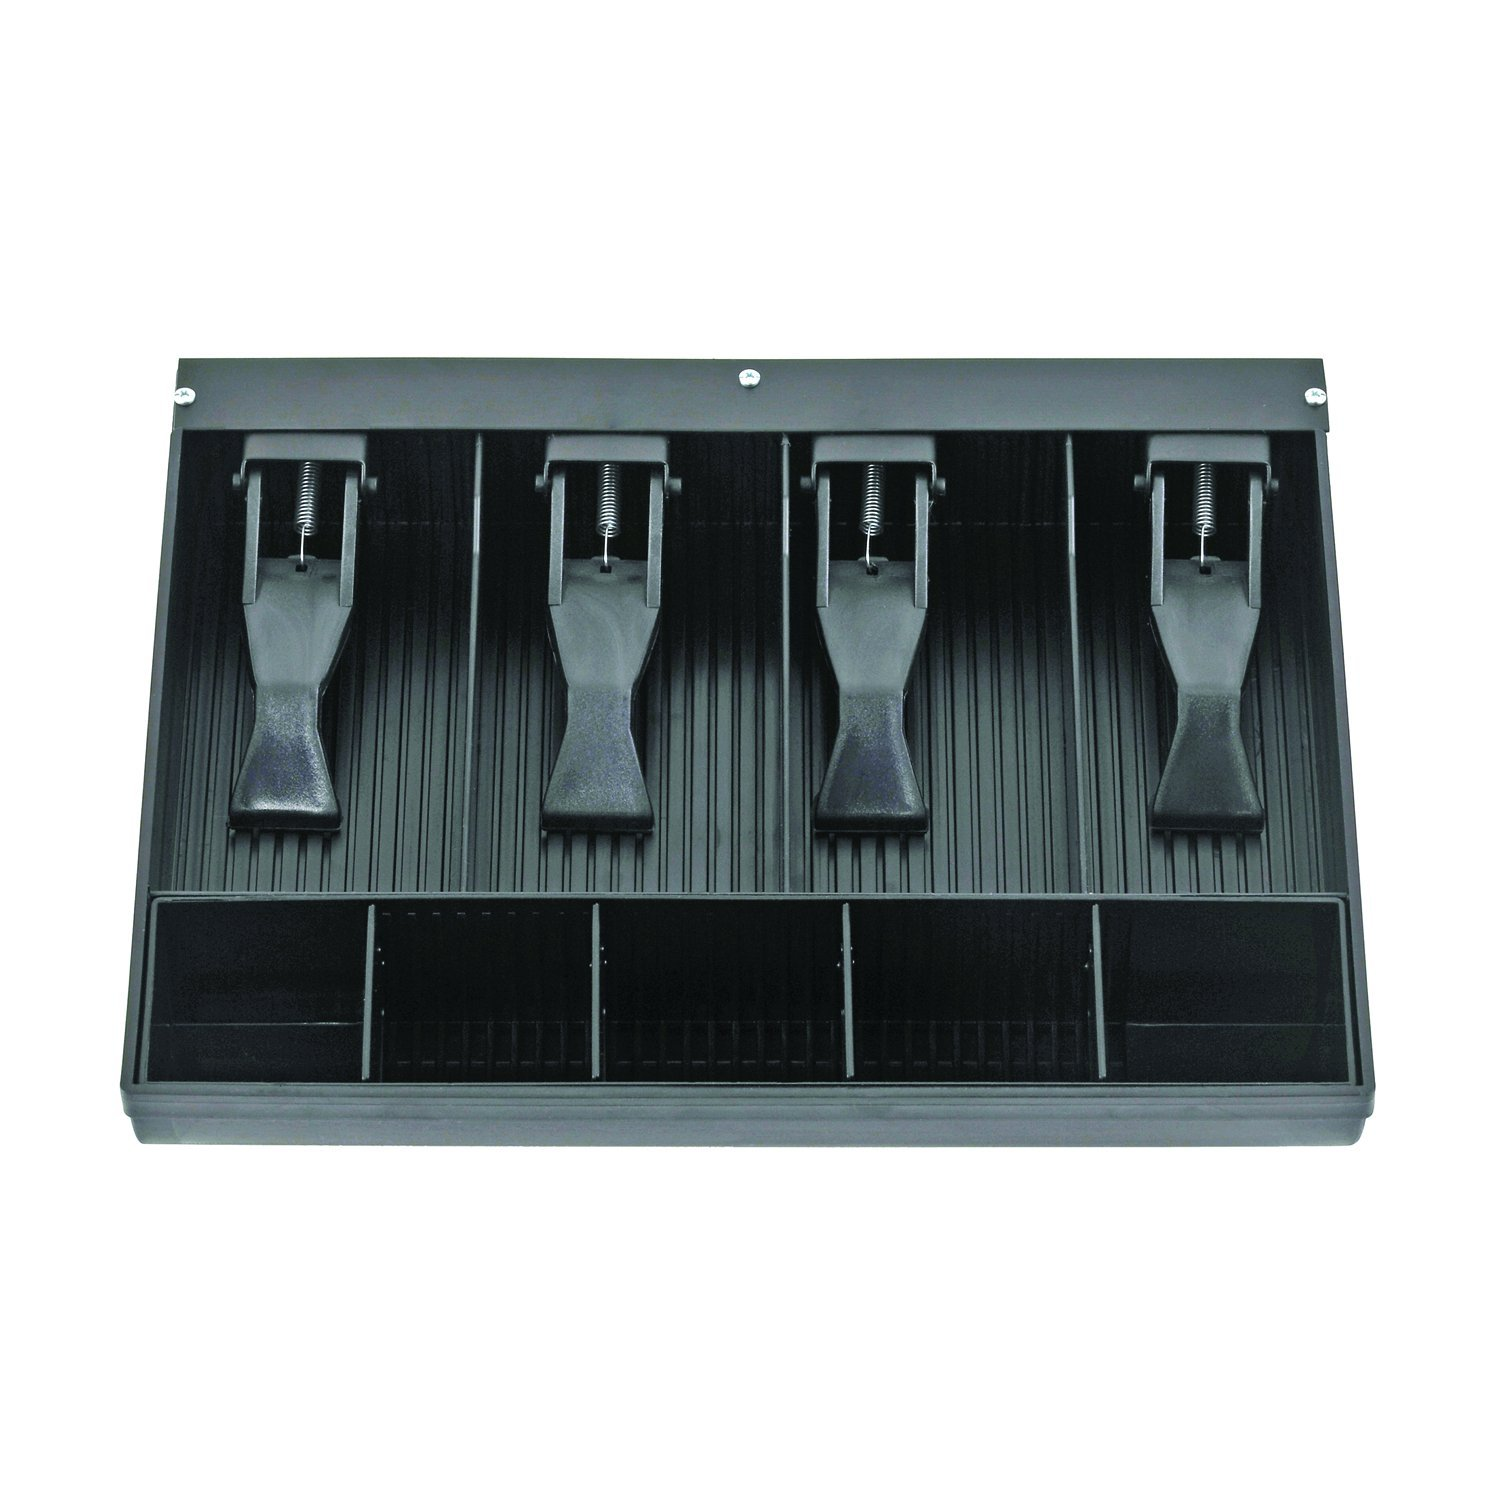 STEELMASTER 2.19 x 9.63 x 11.5 Inches, Replacement Cash Tray for Model 1046, Black (225284304) by MMF Industries